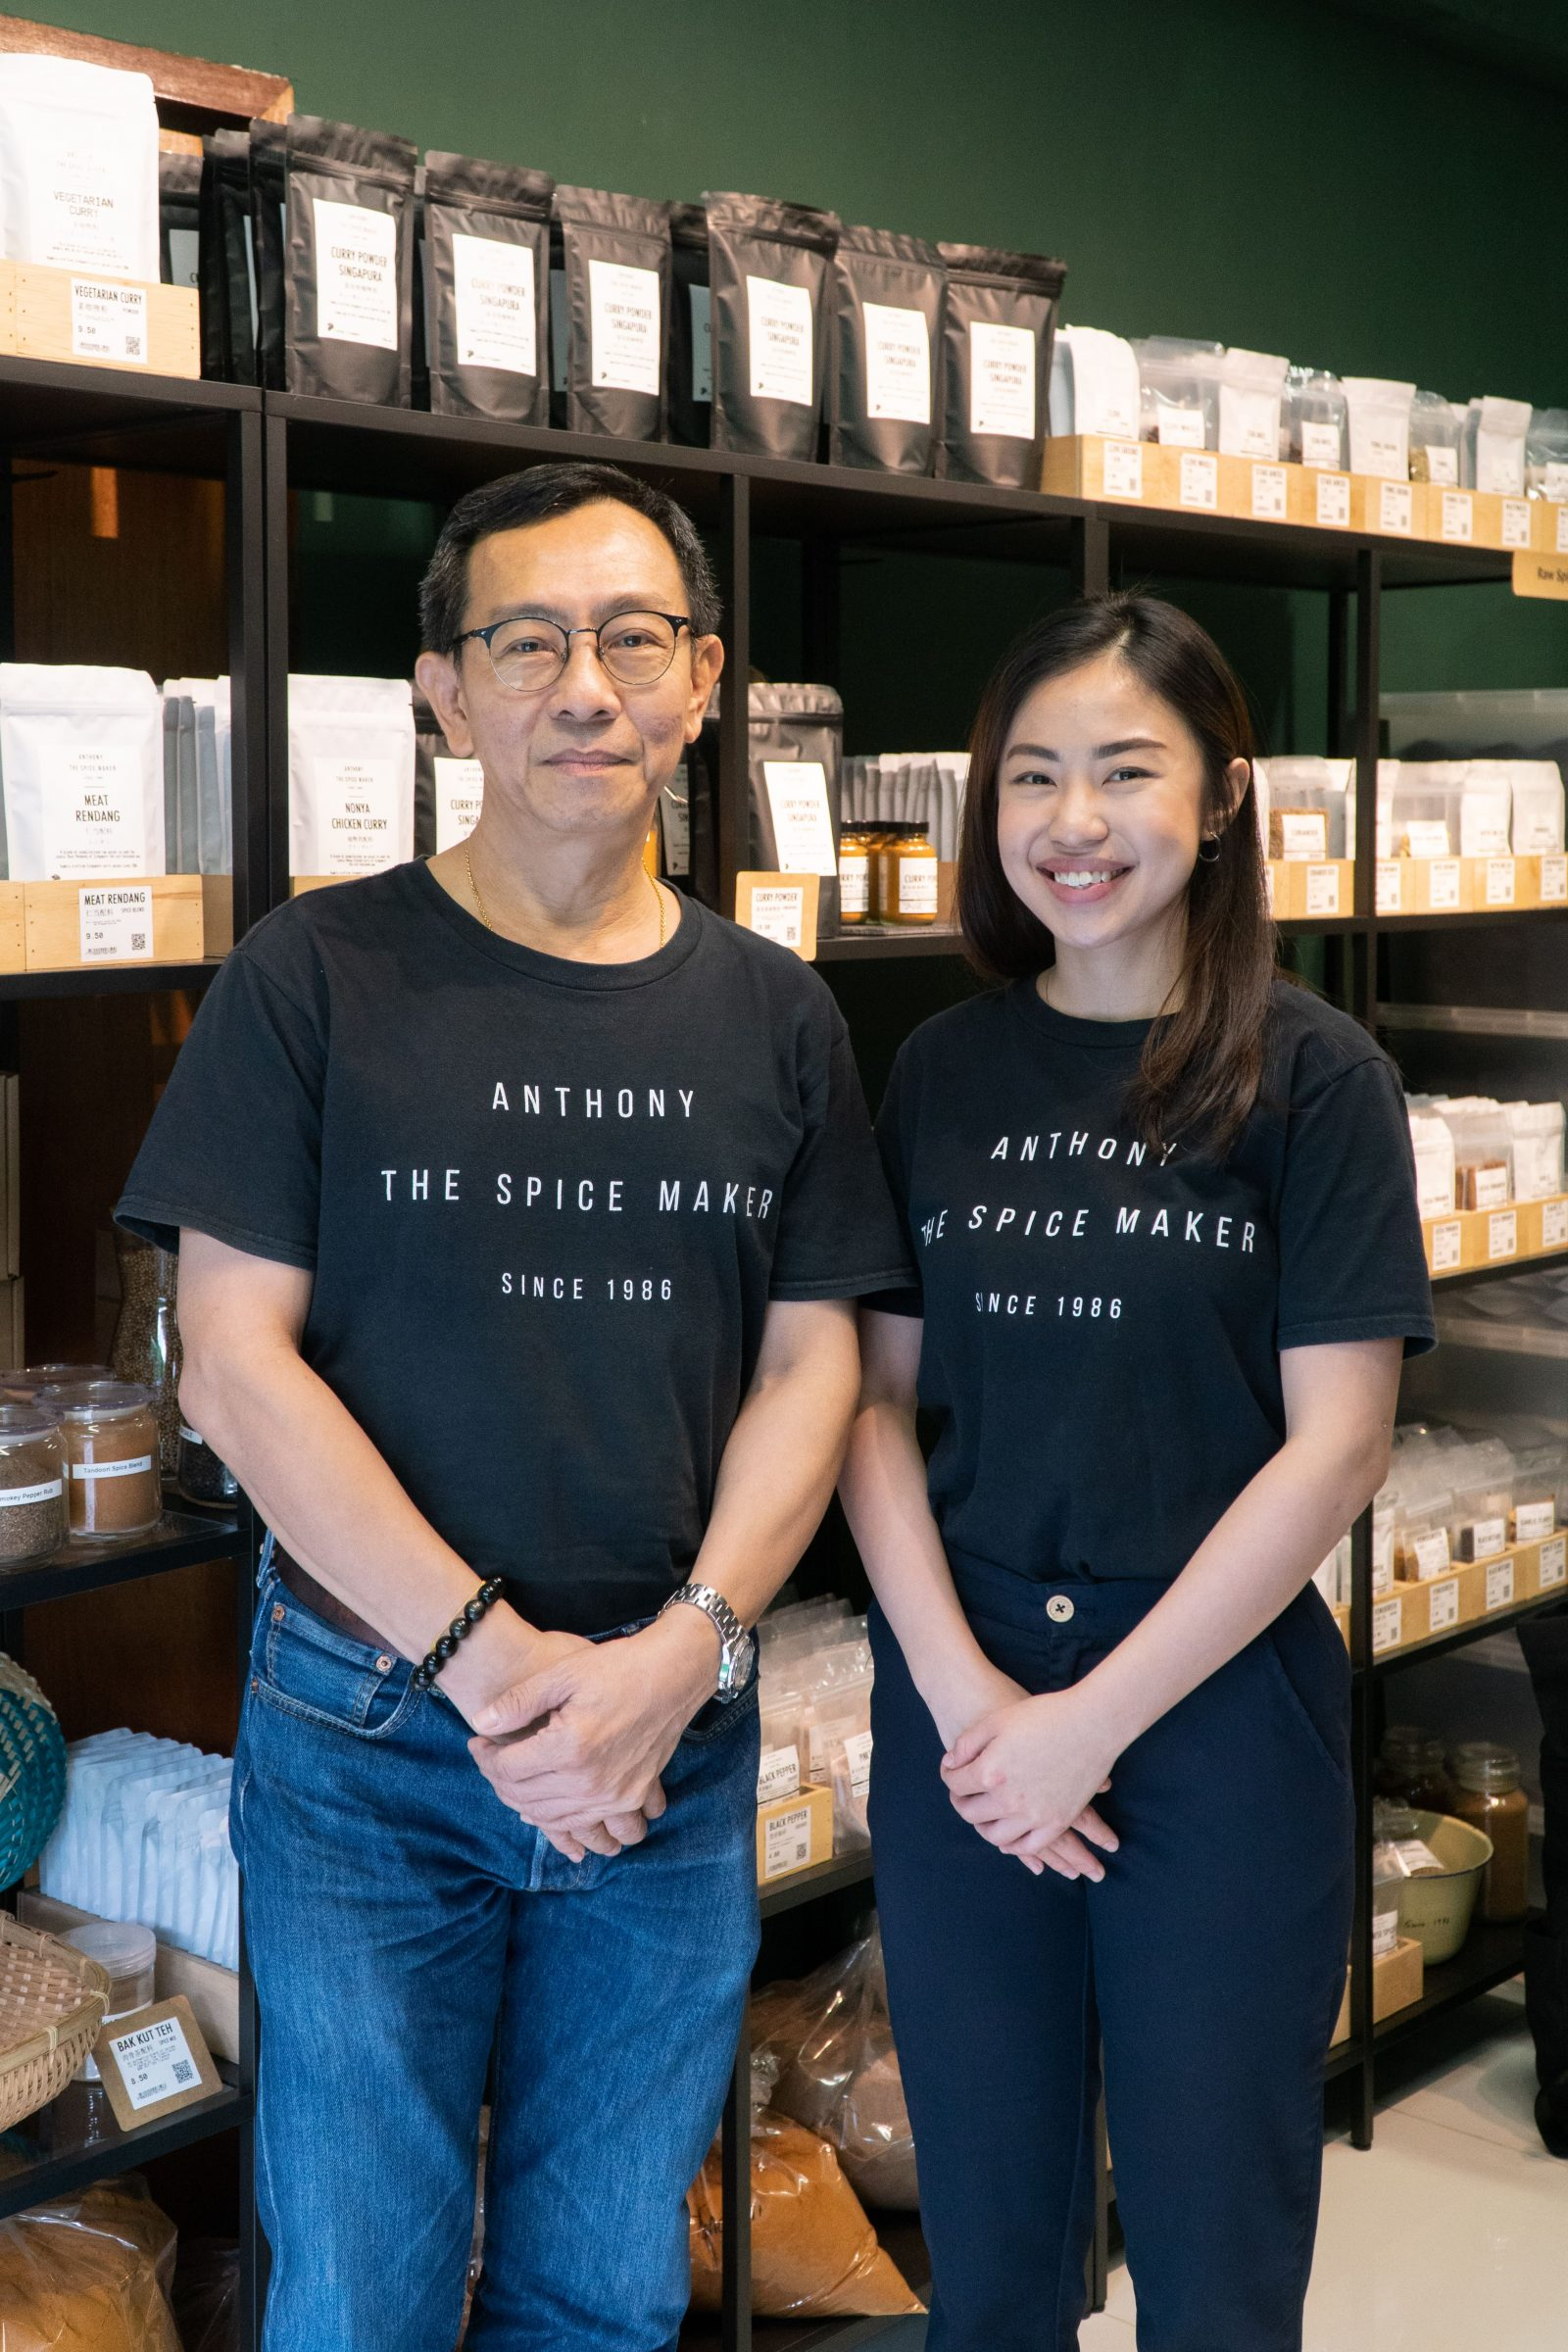 Spice maker Anthony Leow and his daughter, Min Ling